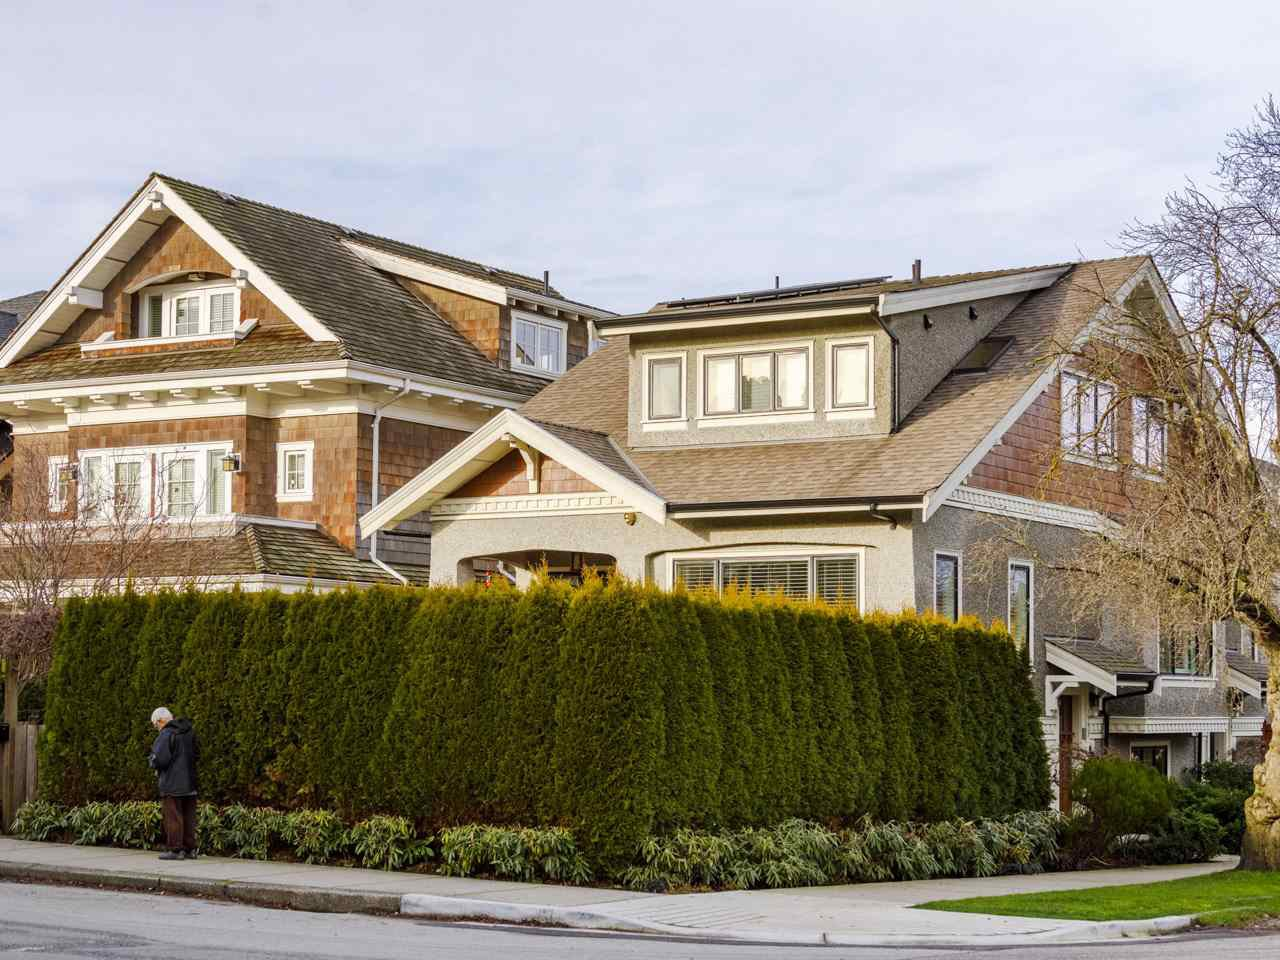 """Main Photo: 3209 W 2ND Avenue in Vancouver: Kitsilano Townhouse for sale in """"Kitsilano"""" (Vancouver West)  : MLS®# R2527751"""